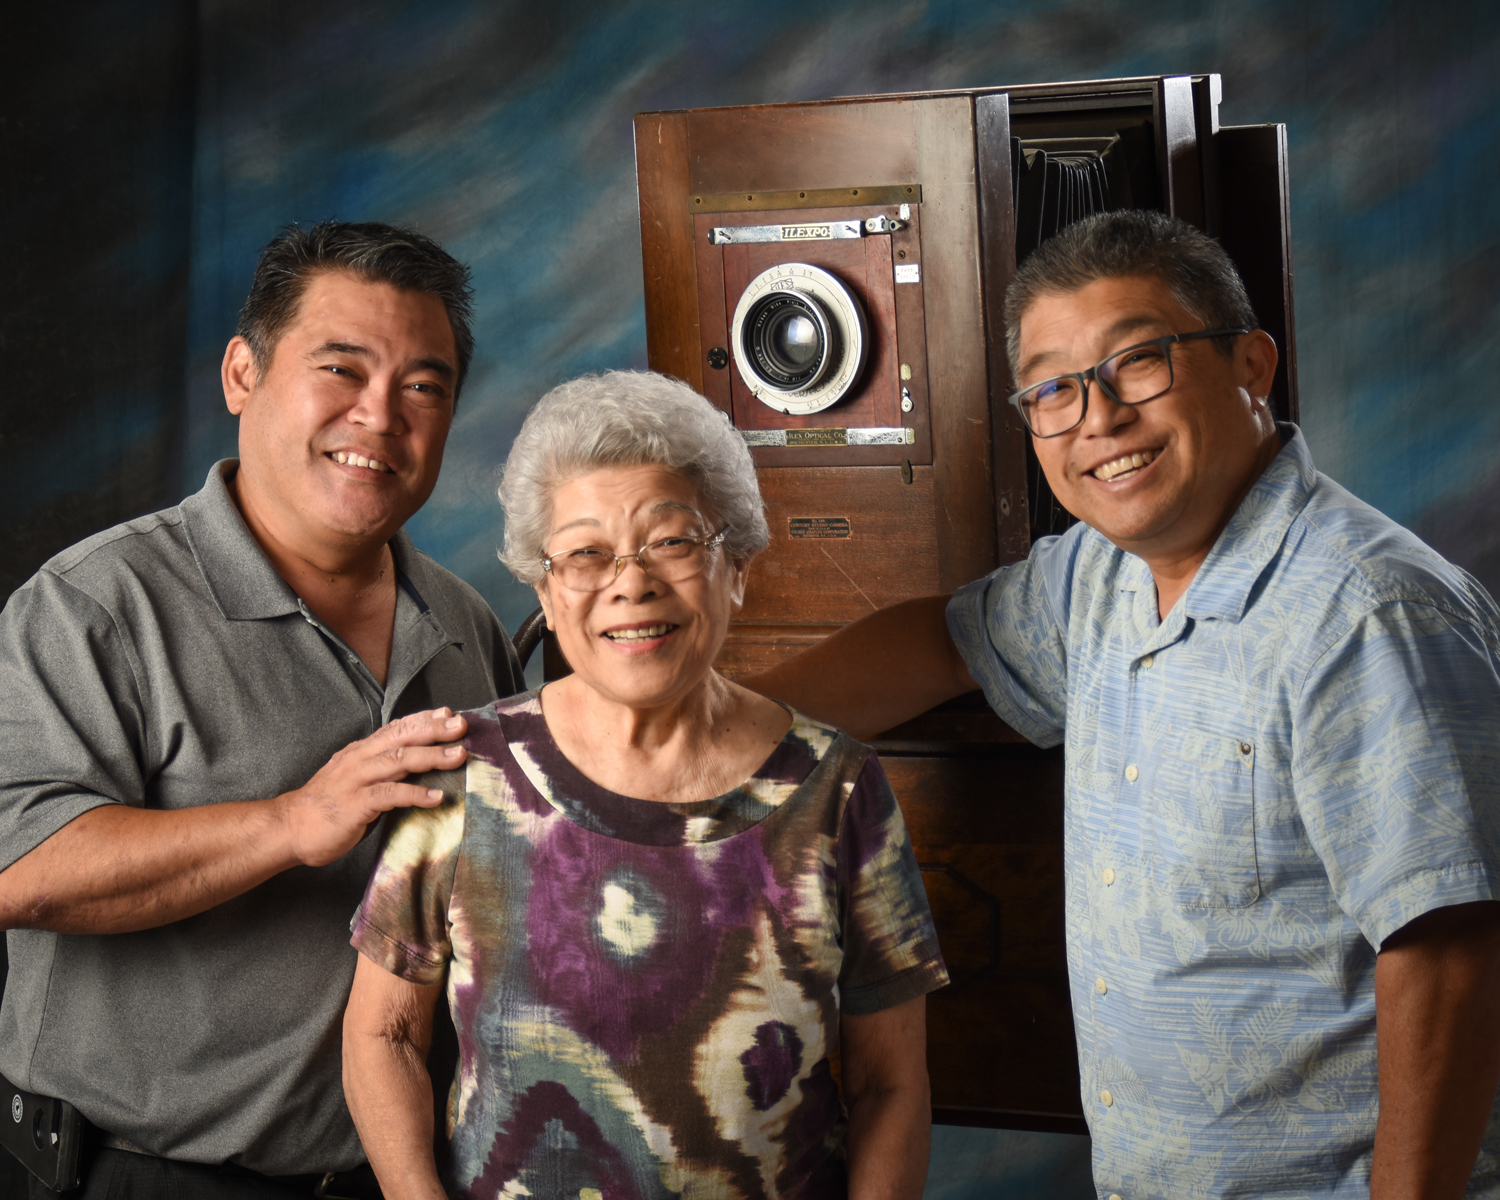 The Nagamine Photo Studio family, from left: Ty Shimomura, mom Florence (Nagamine) Shimomura and Rick Shimomura. (Photo courtesy Rick Shimomura)